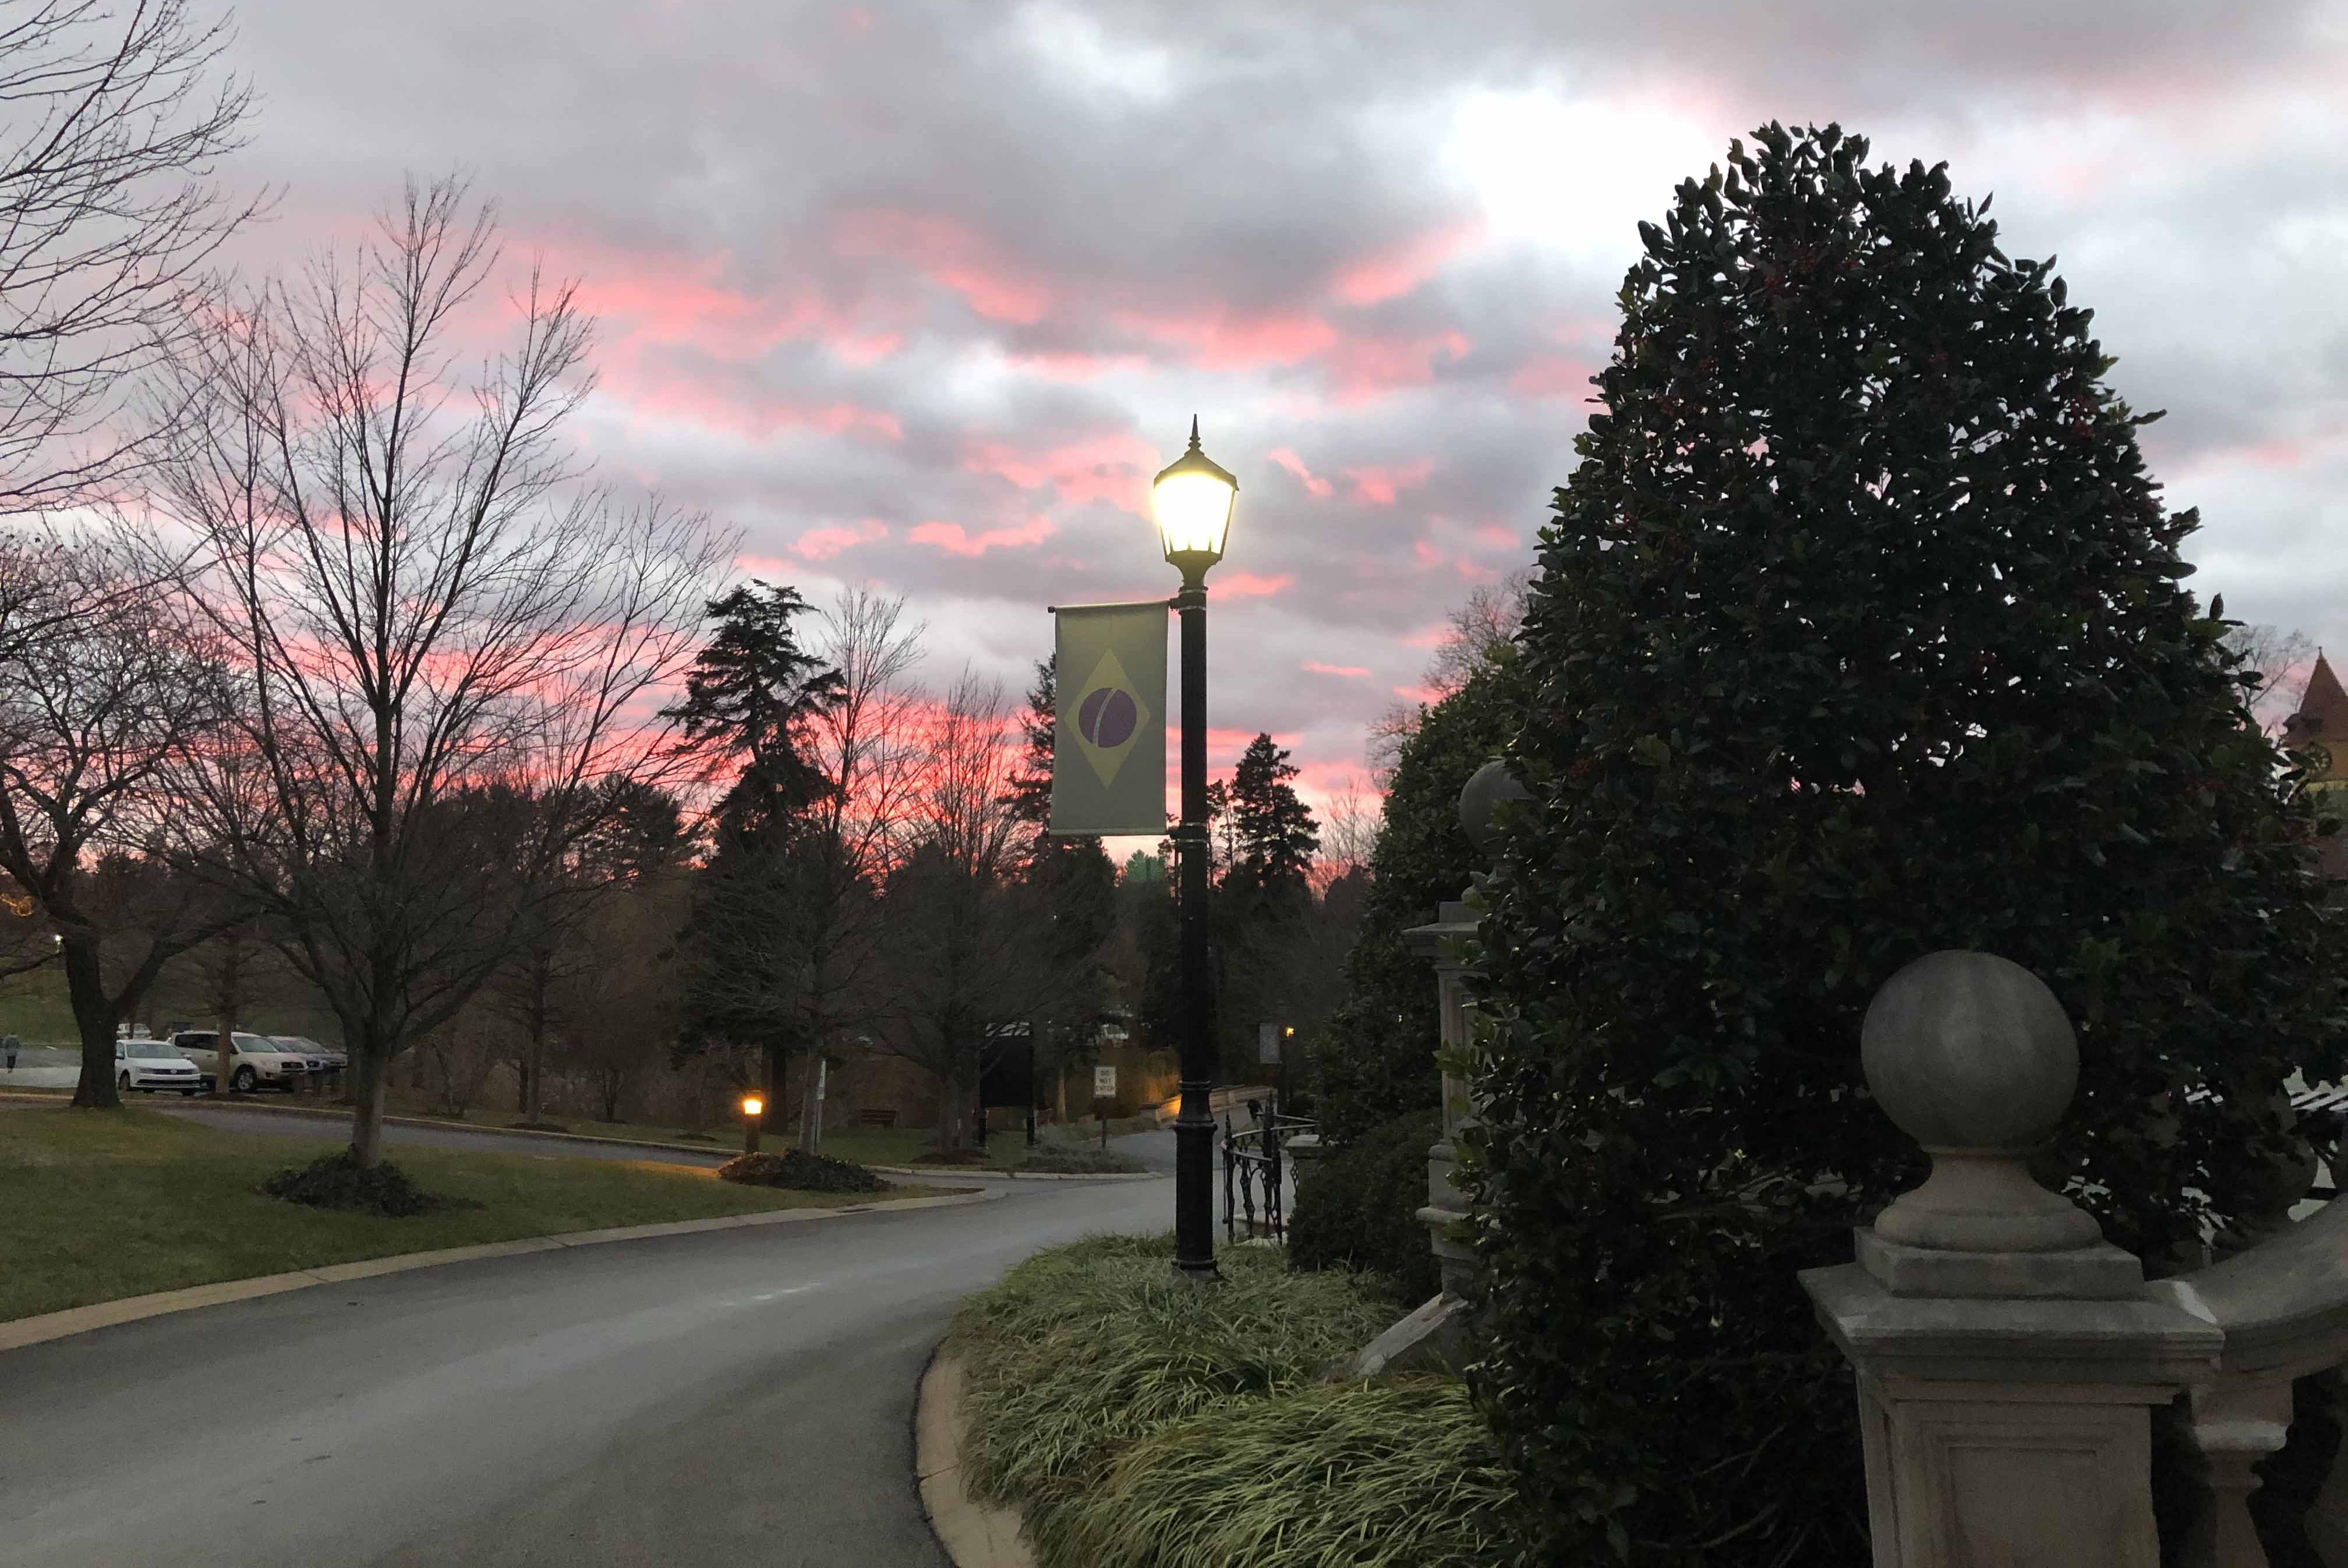 View of a road on campus with trees around it at sunset.